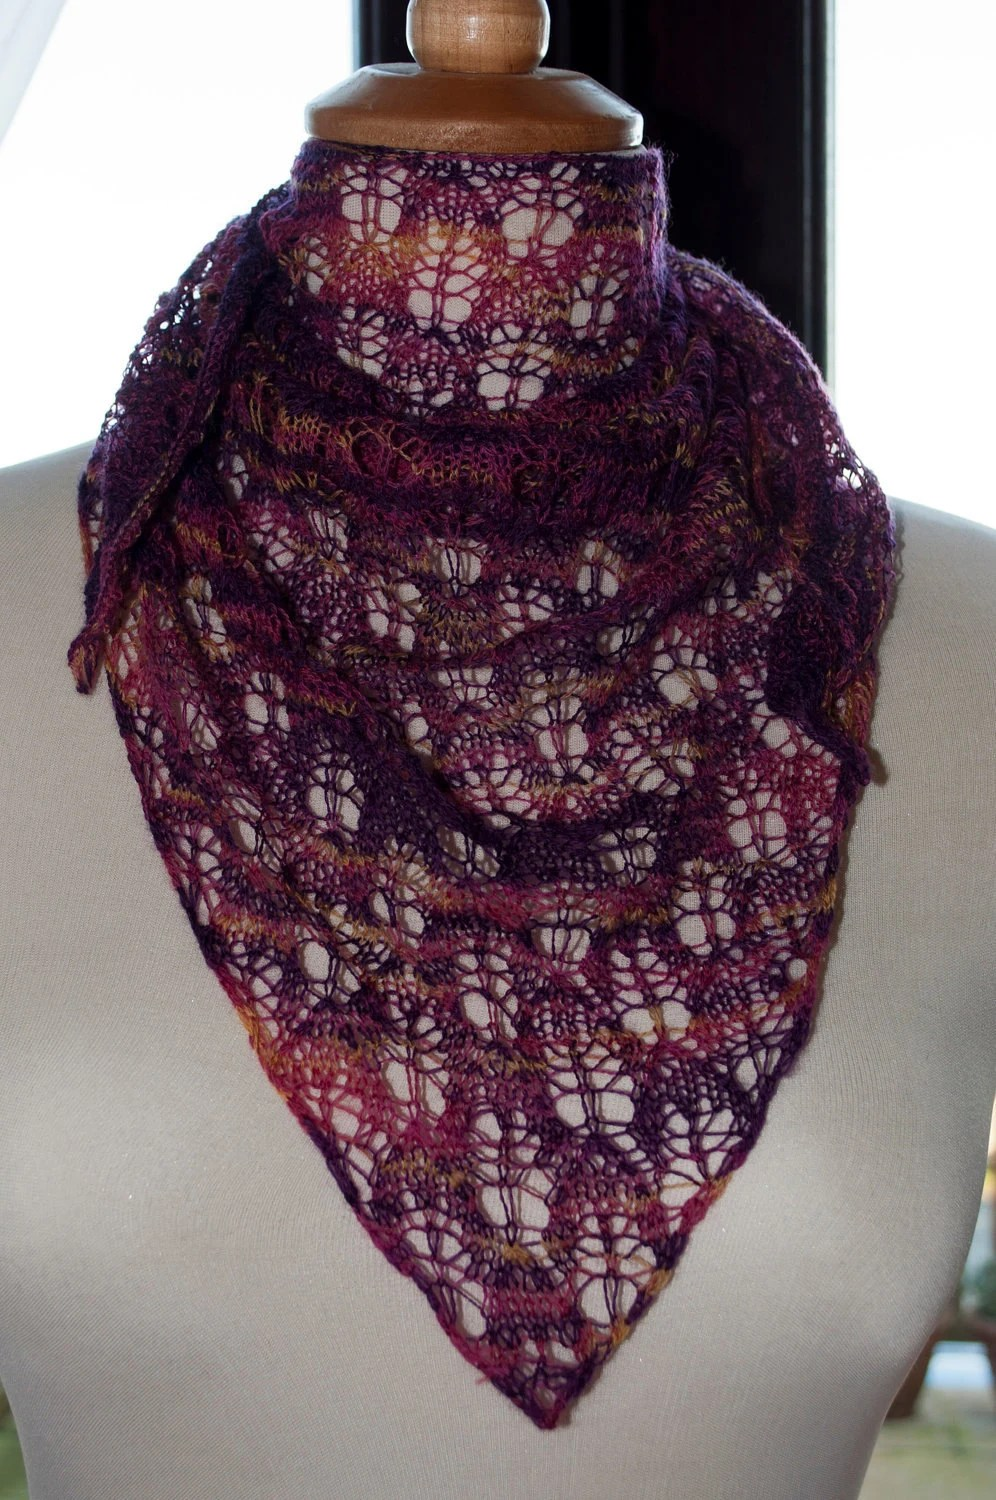 Handknitted Shawlette in Merino in Shades of Purple and Gold